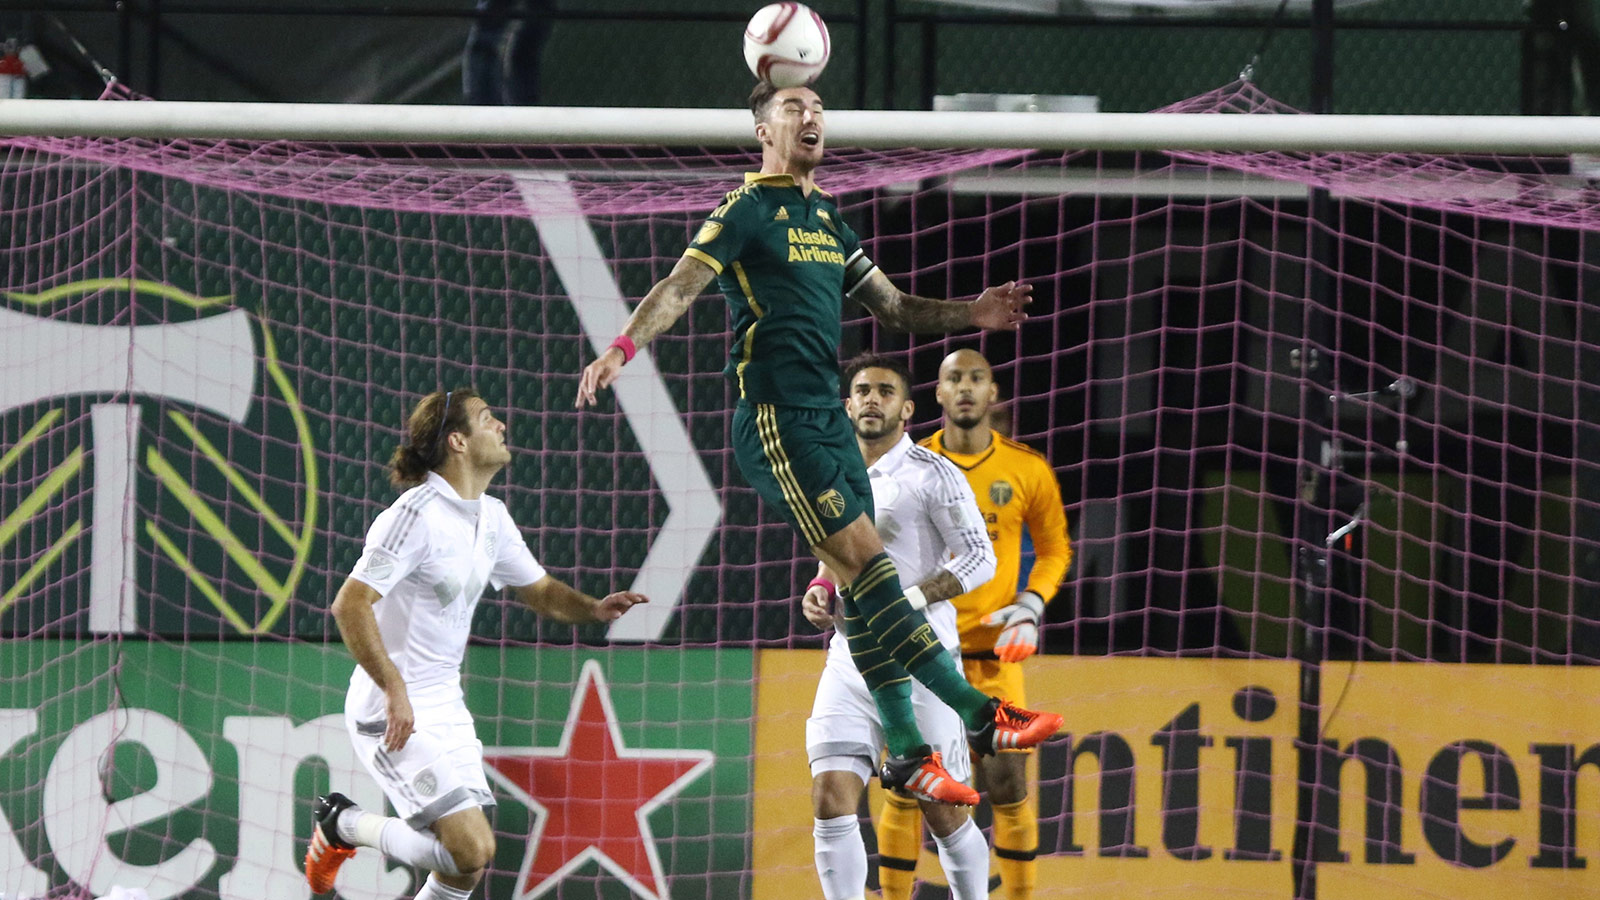 Sporting KC's season ends with playoff loss to Portland